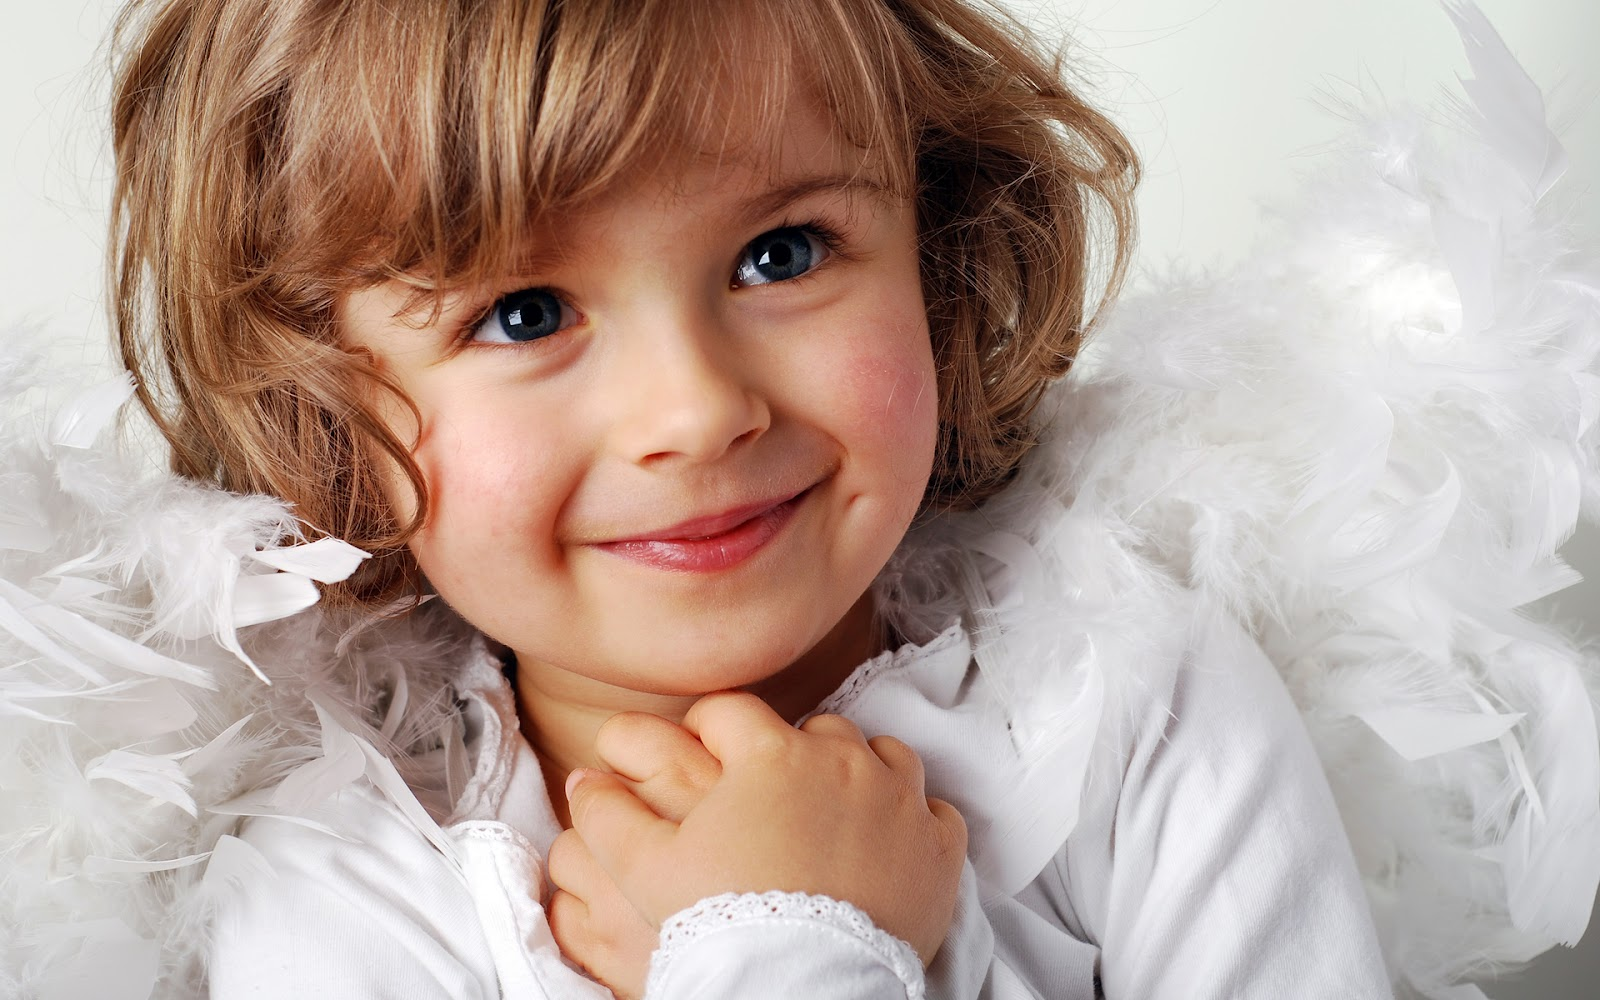 the smile of the child wallpapers high quality | download free